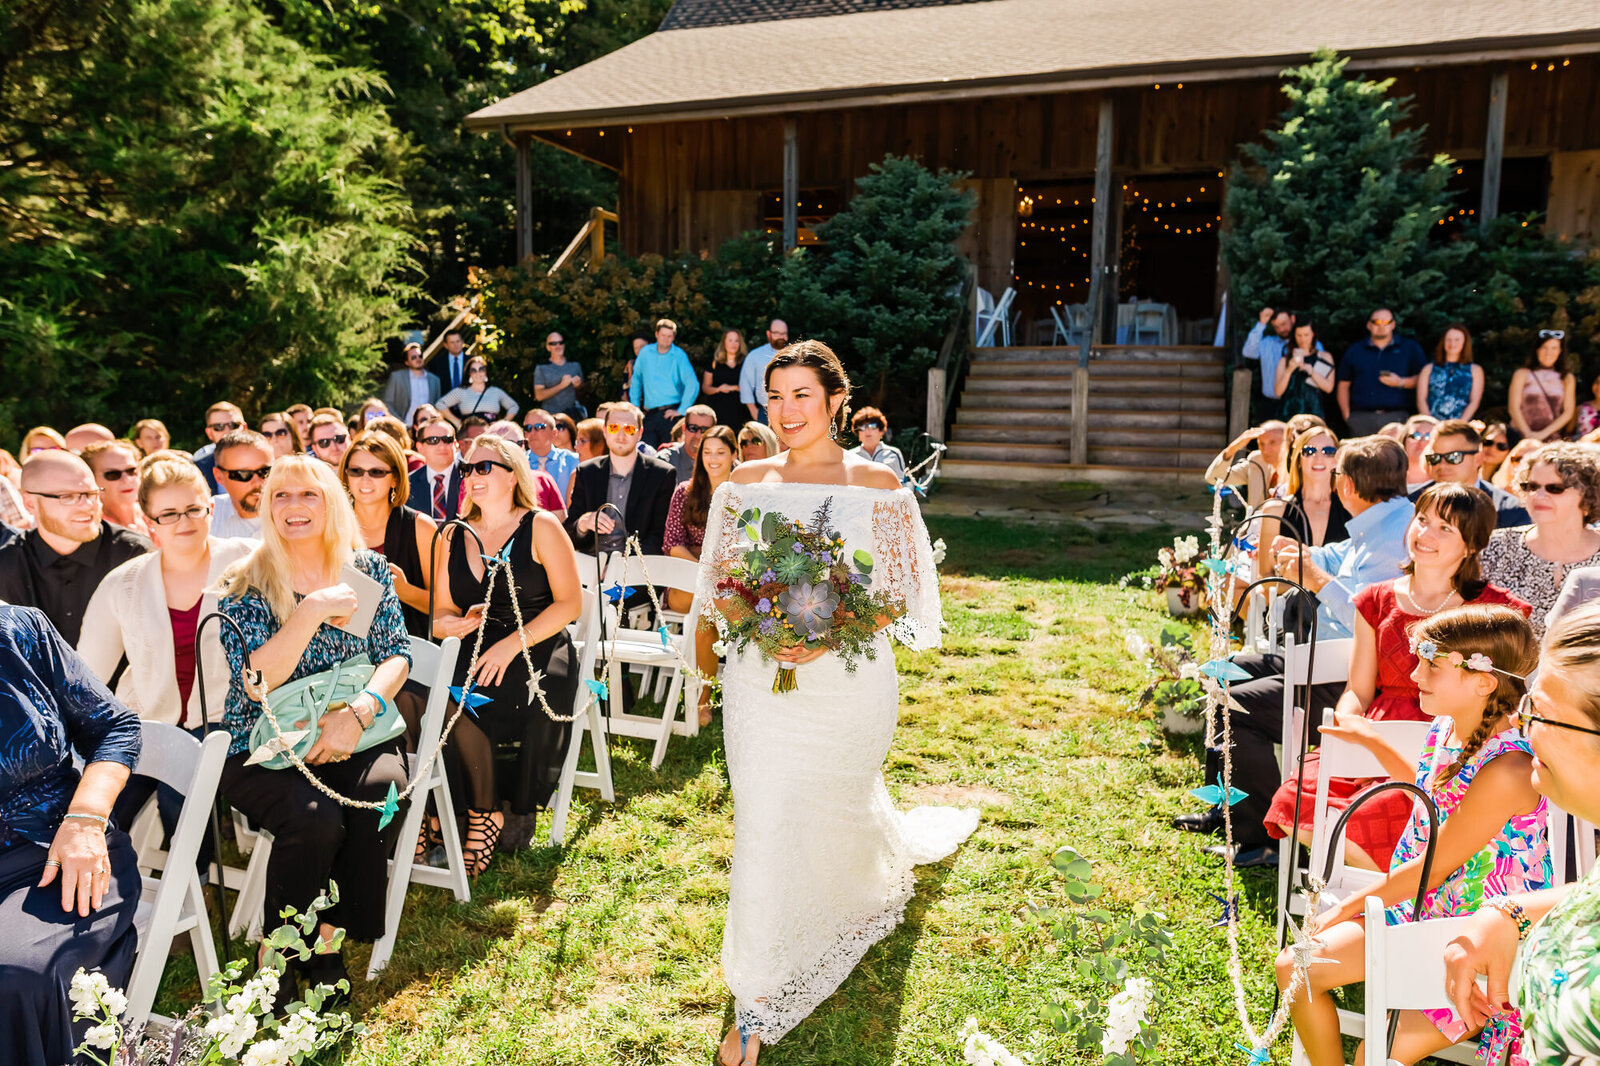 Bride walking down aisle for winery wedding cemony at Chaumette Vineyards